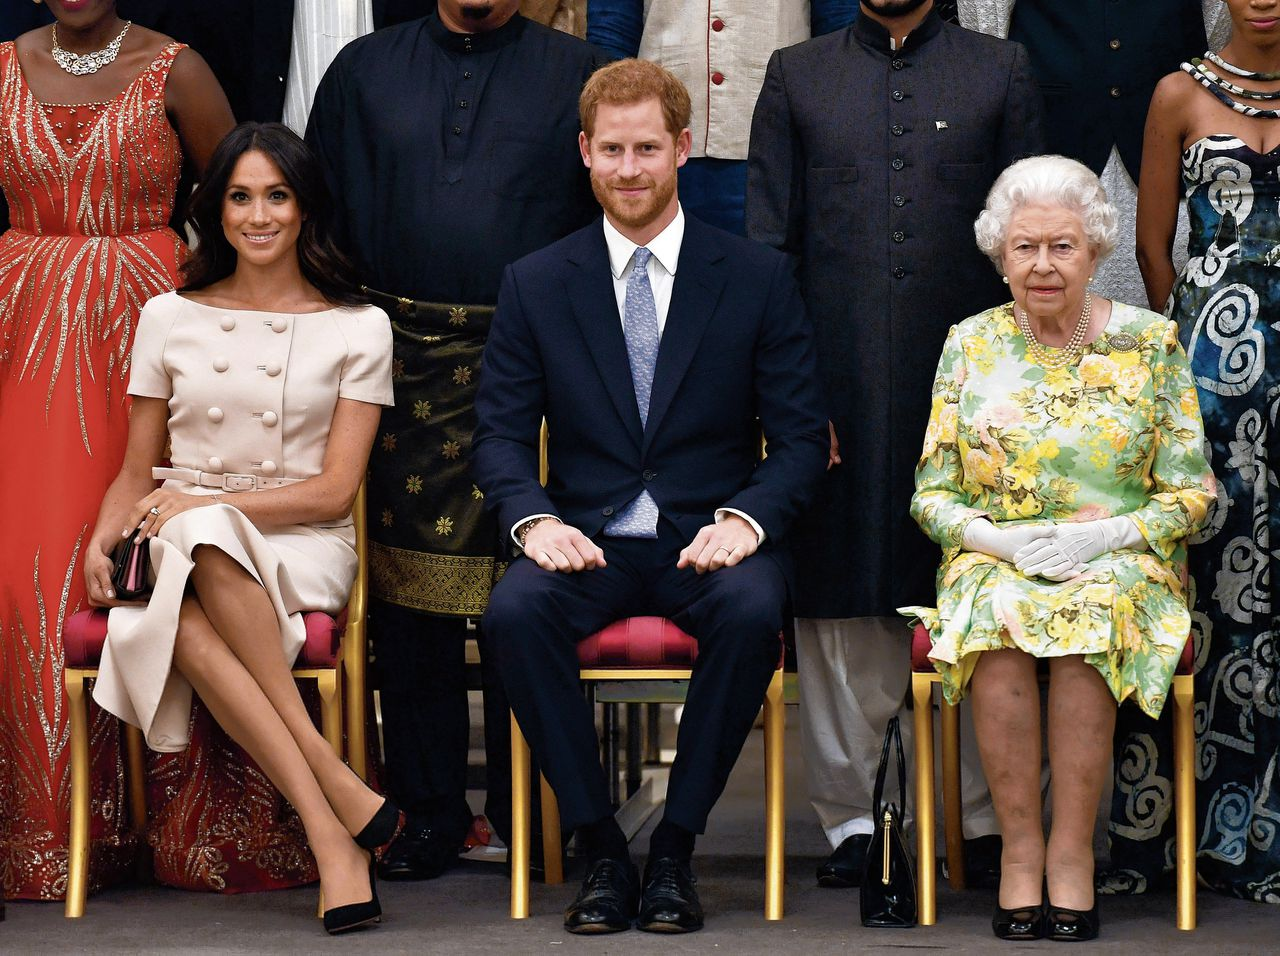 Koningin Elizabeth, prins Harry en Meghan in 2018 in Buckingham Palace.